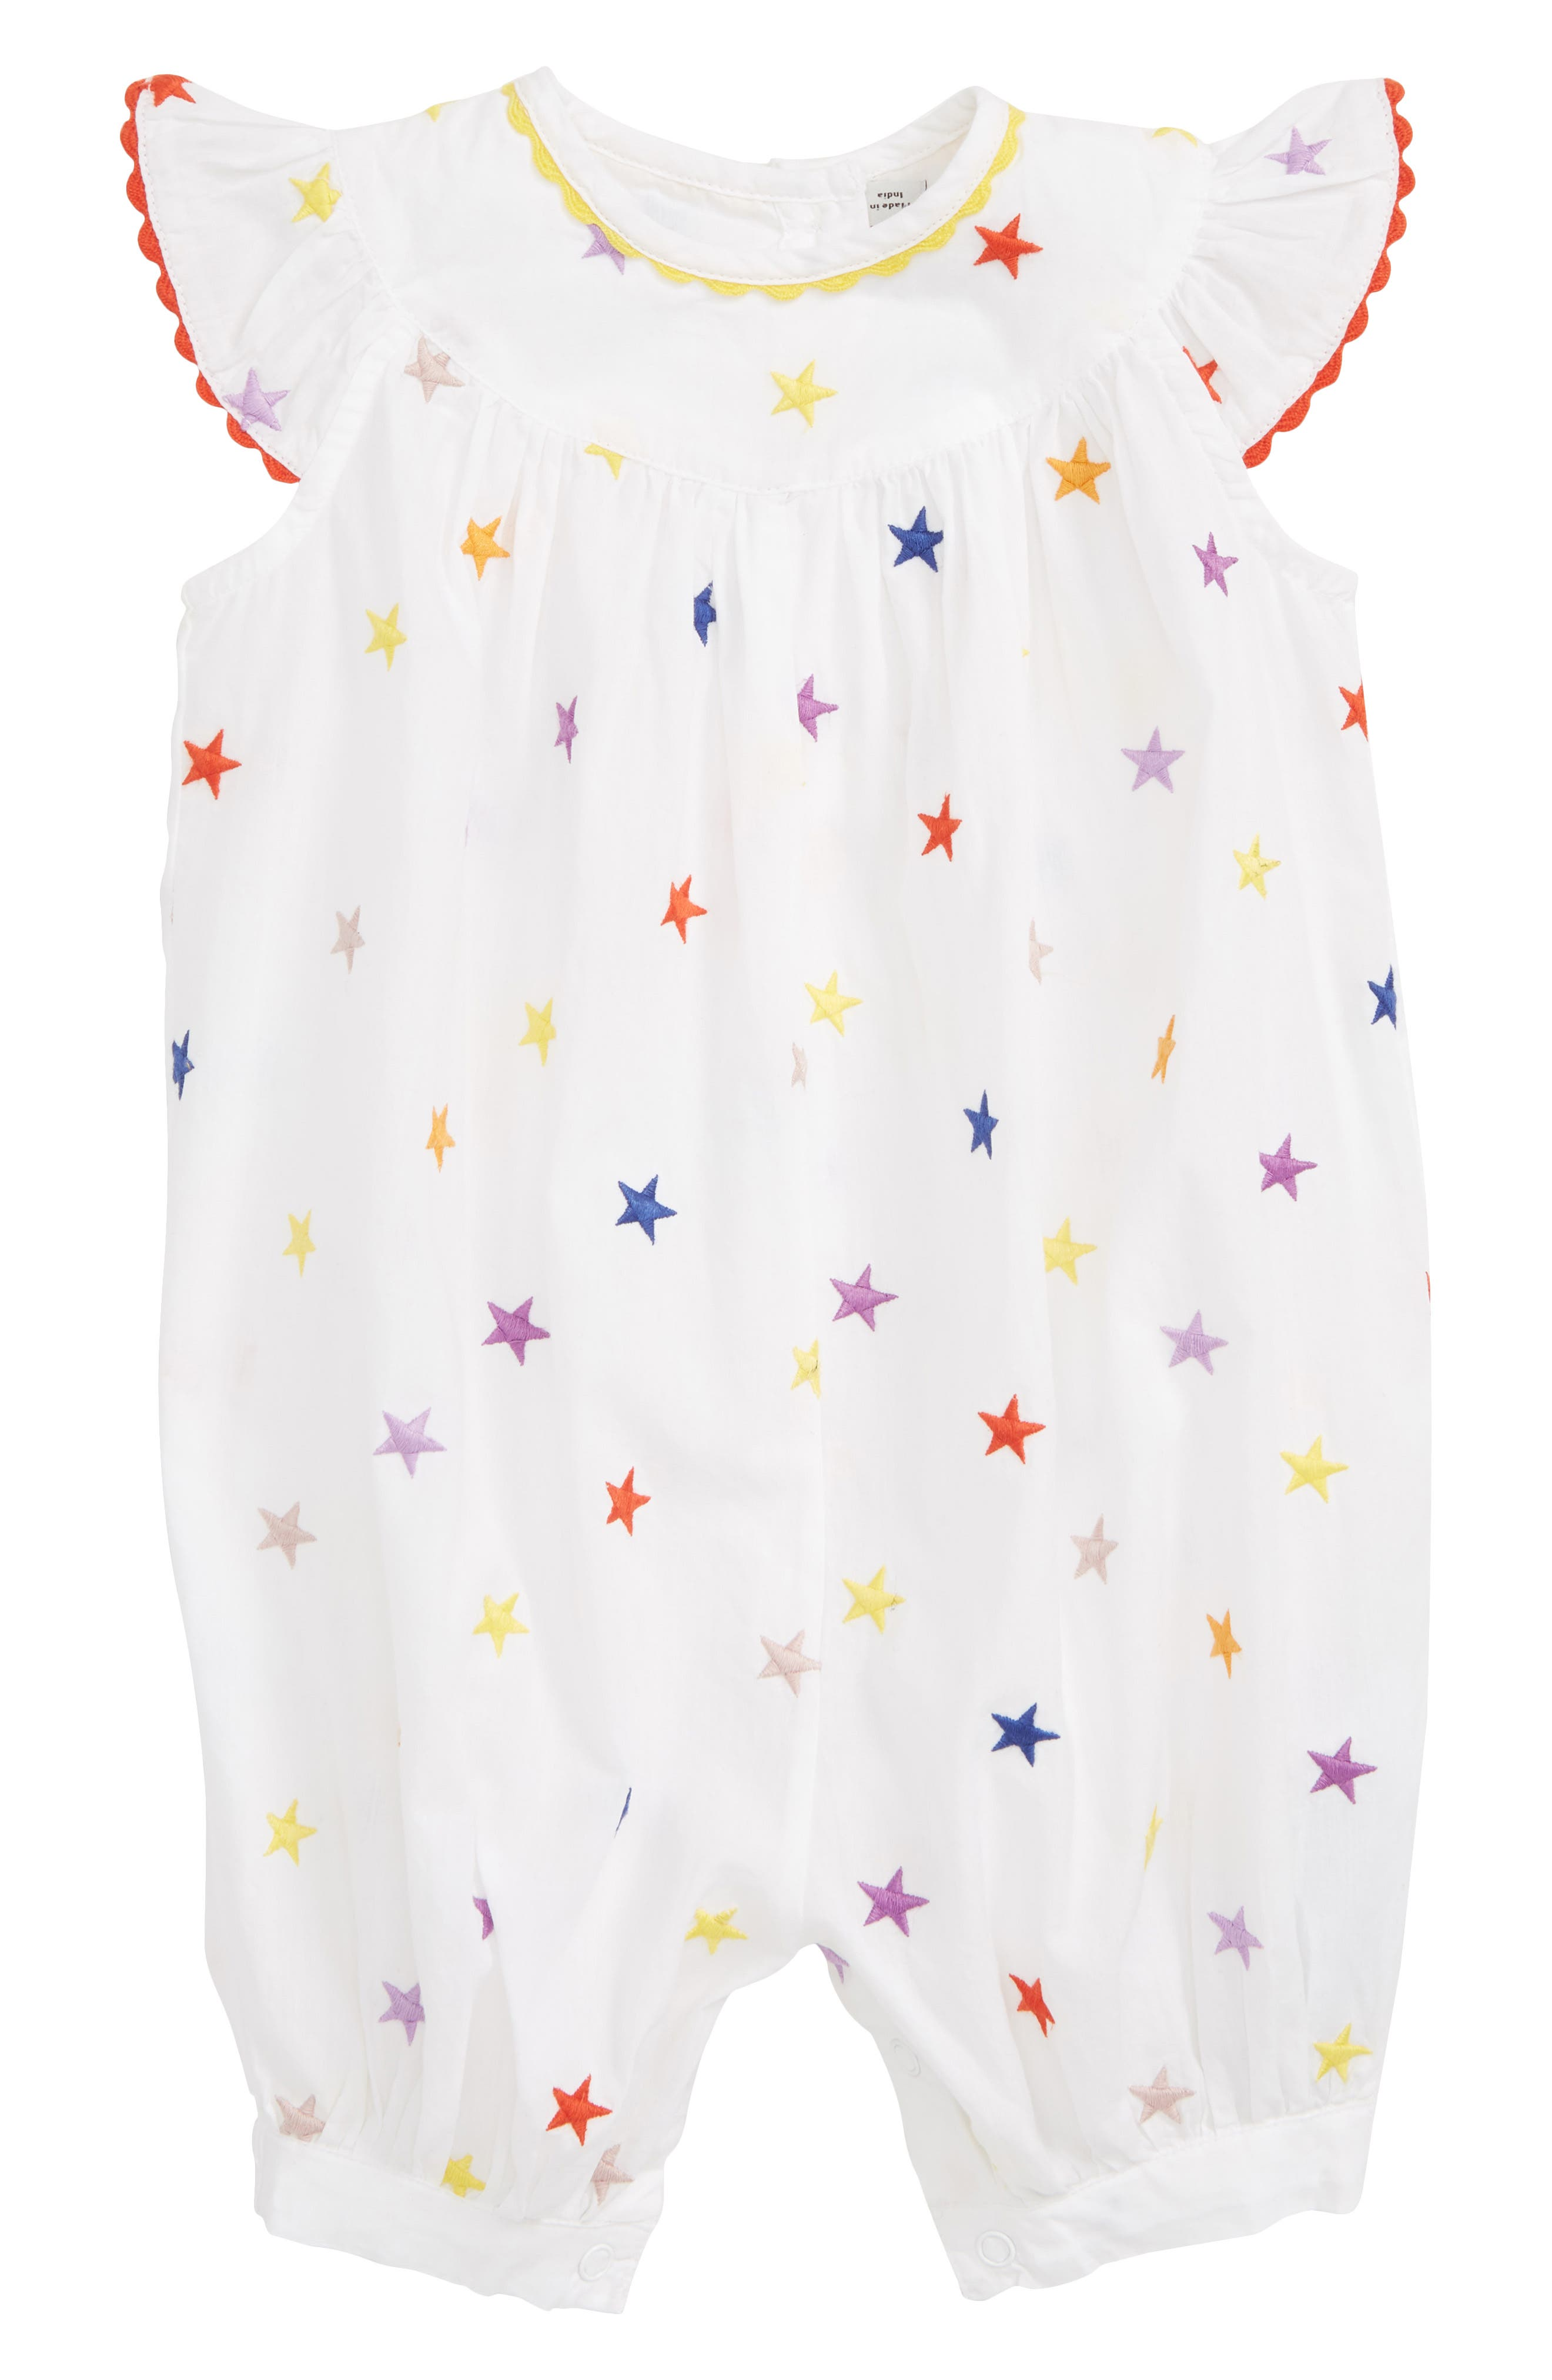 STELLA MCCARTNEY KIDS, Stella McCartney Embroidered Stars Romper, Main thumbnail 1, color, 9094 WHITE